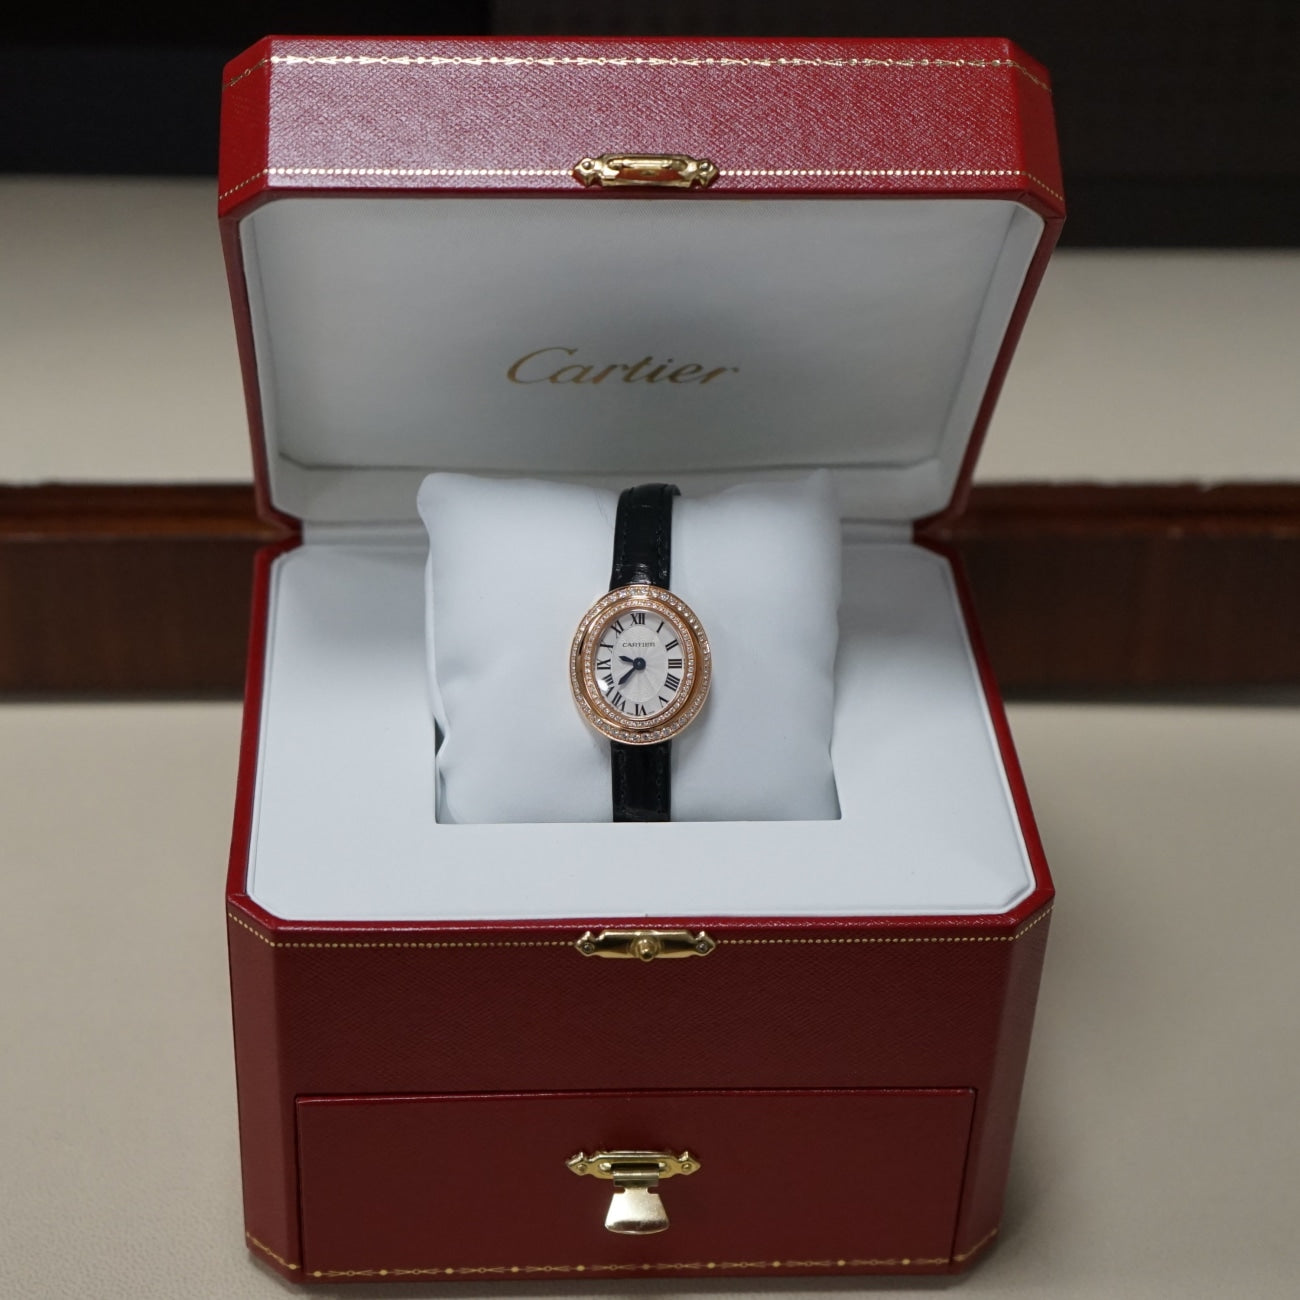 Pre-Owned Cartier Pre-Owned Watches - Cartier Hypnose in 18 Karat Rose Gold WJHY0003 | Manfredi Jewels